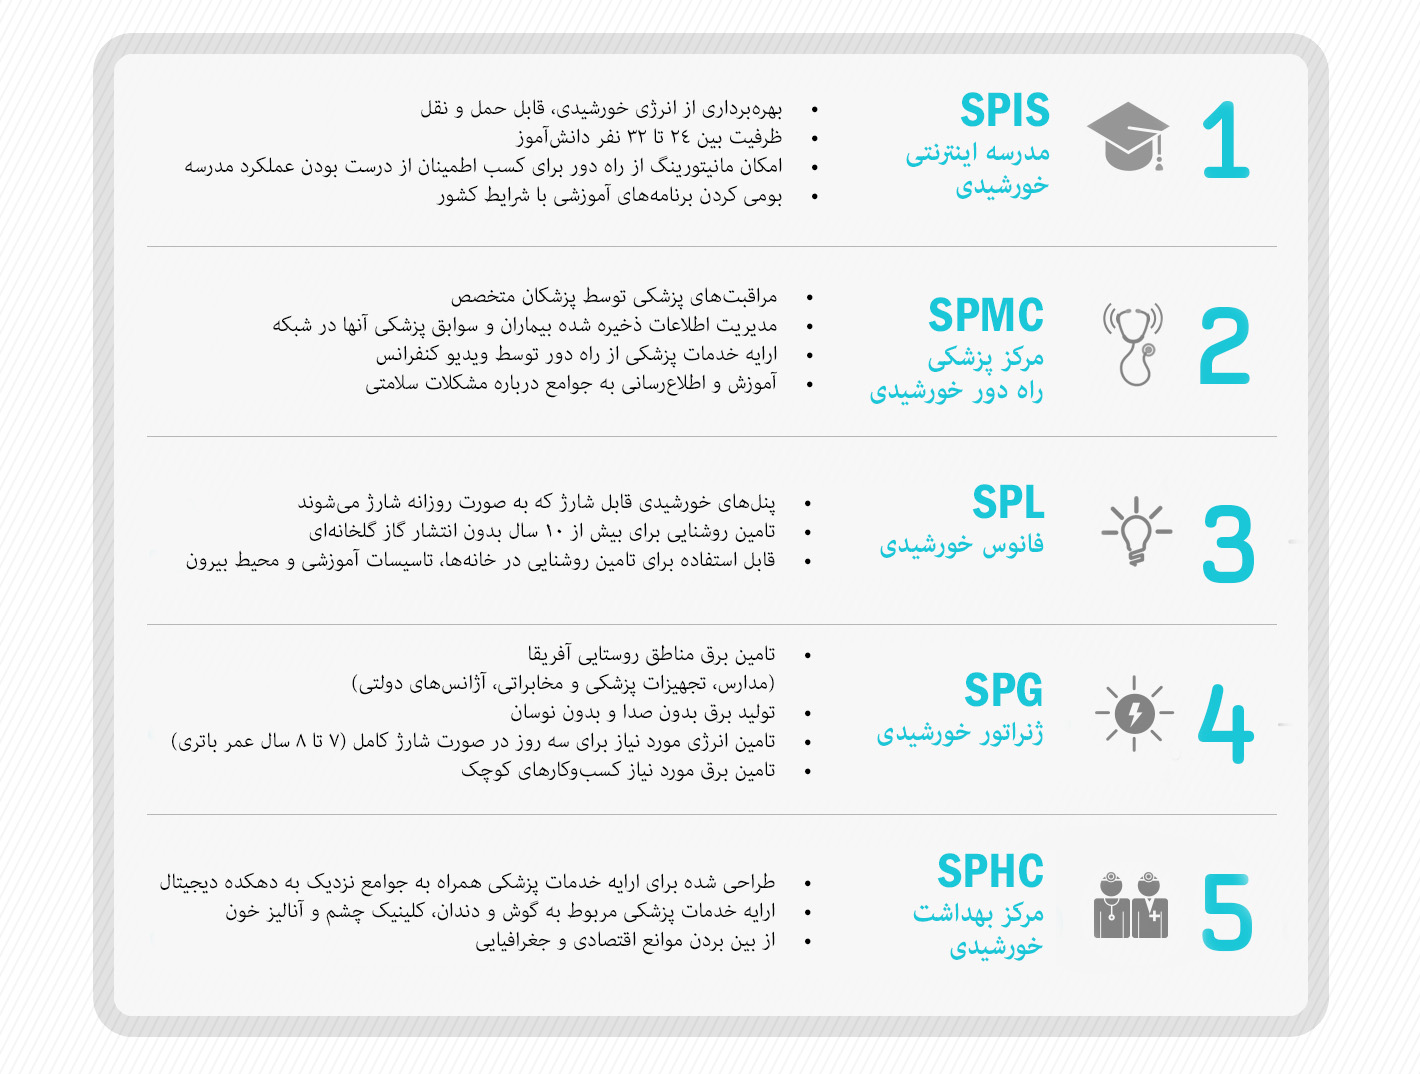 [Infographic] Digital Village Part 2 - Farsi